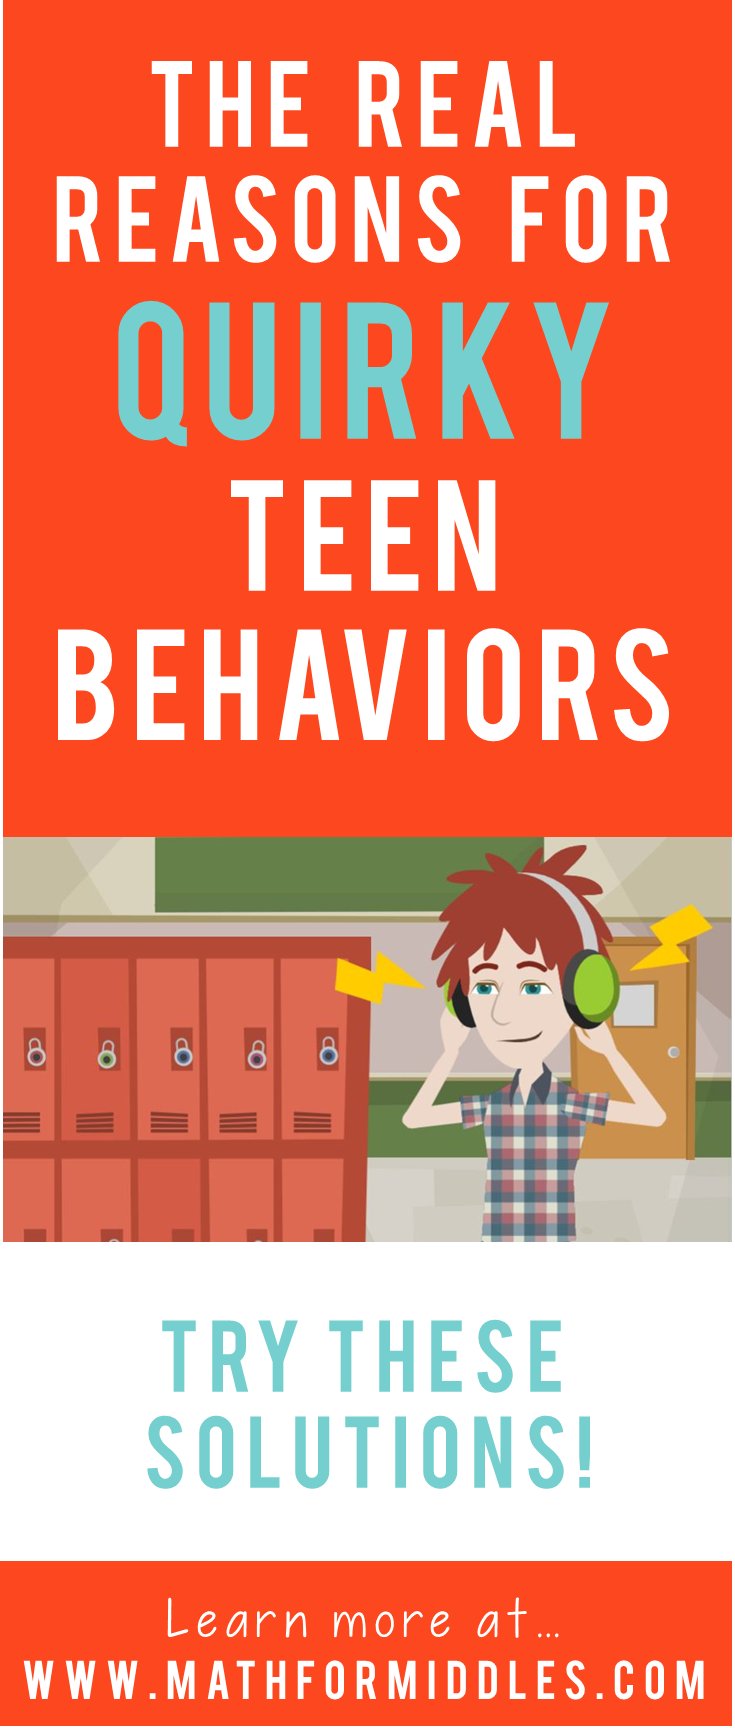 Reasons for Quirky Teen Behaviors